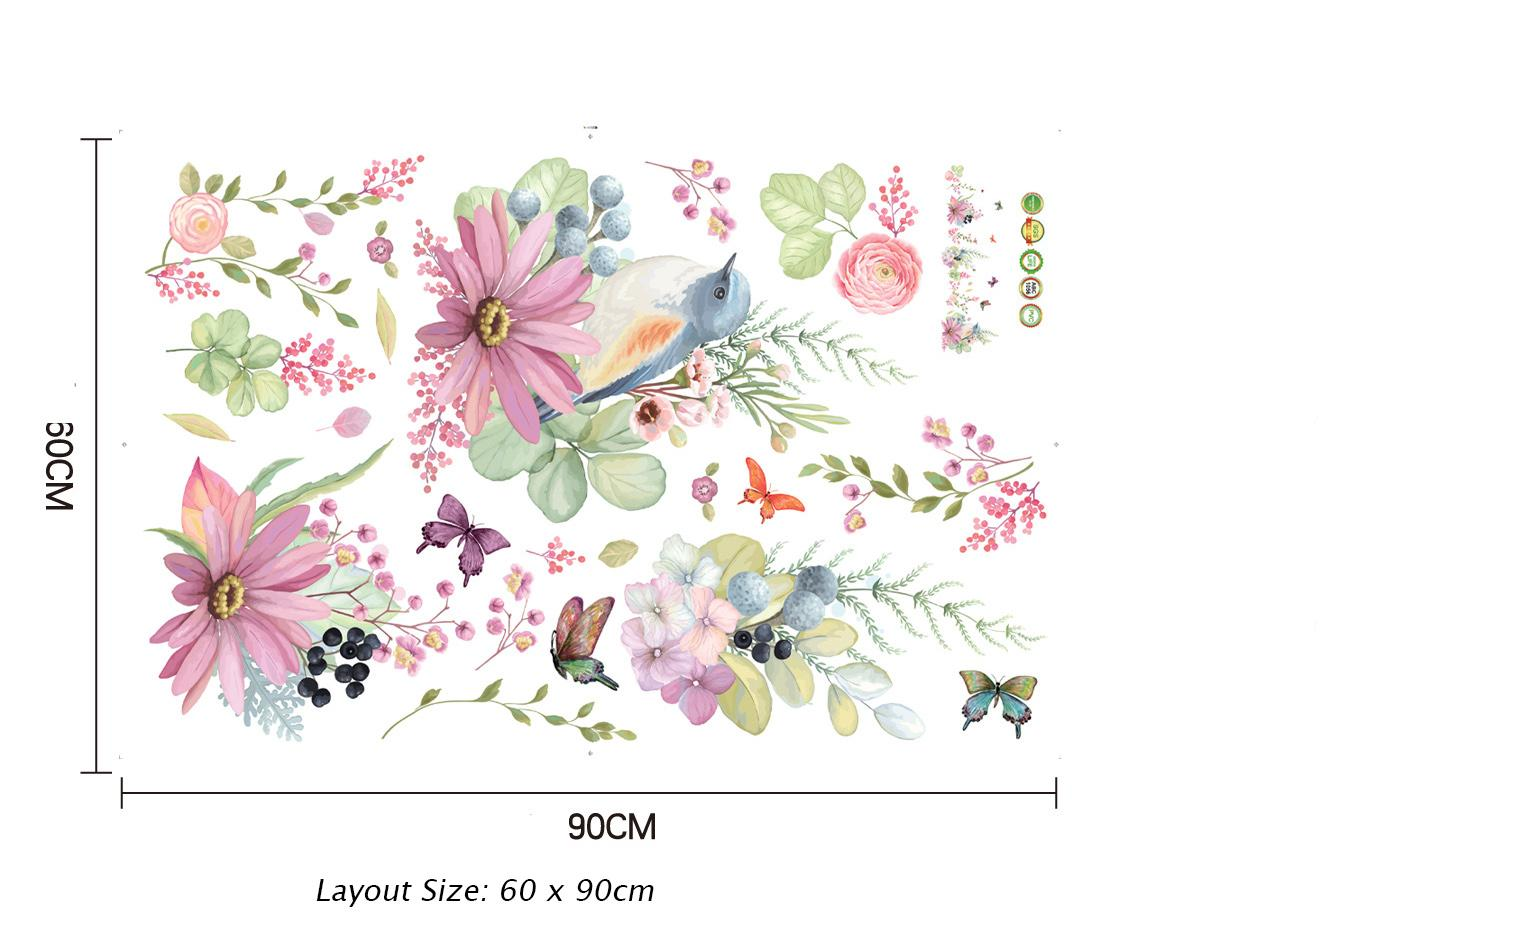 Birds on the Colorful Flowers Butterfly Wall Border Decal Stickers DIY Home Decoration Skirting Line Wall Graphic Creative Removable PVC Art